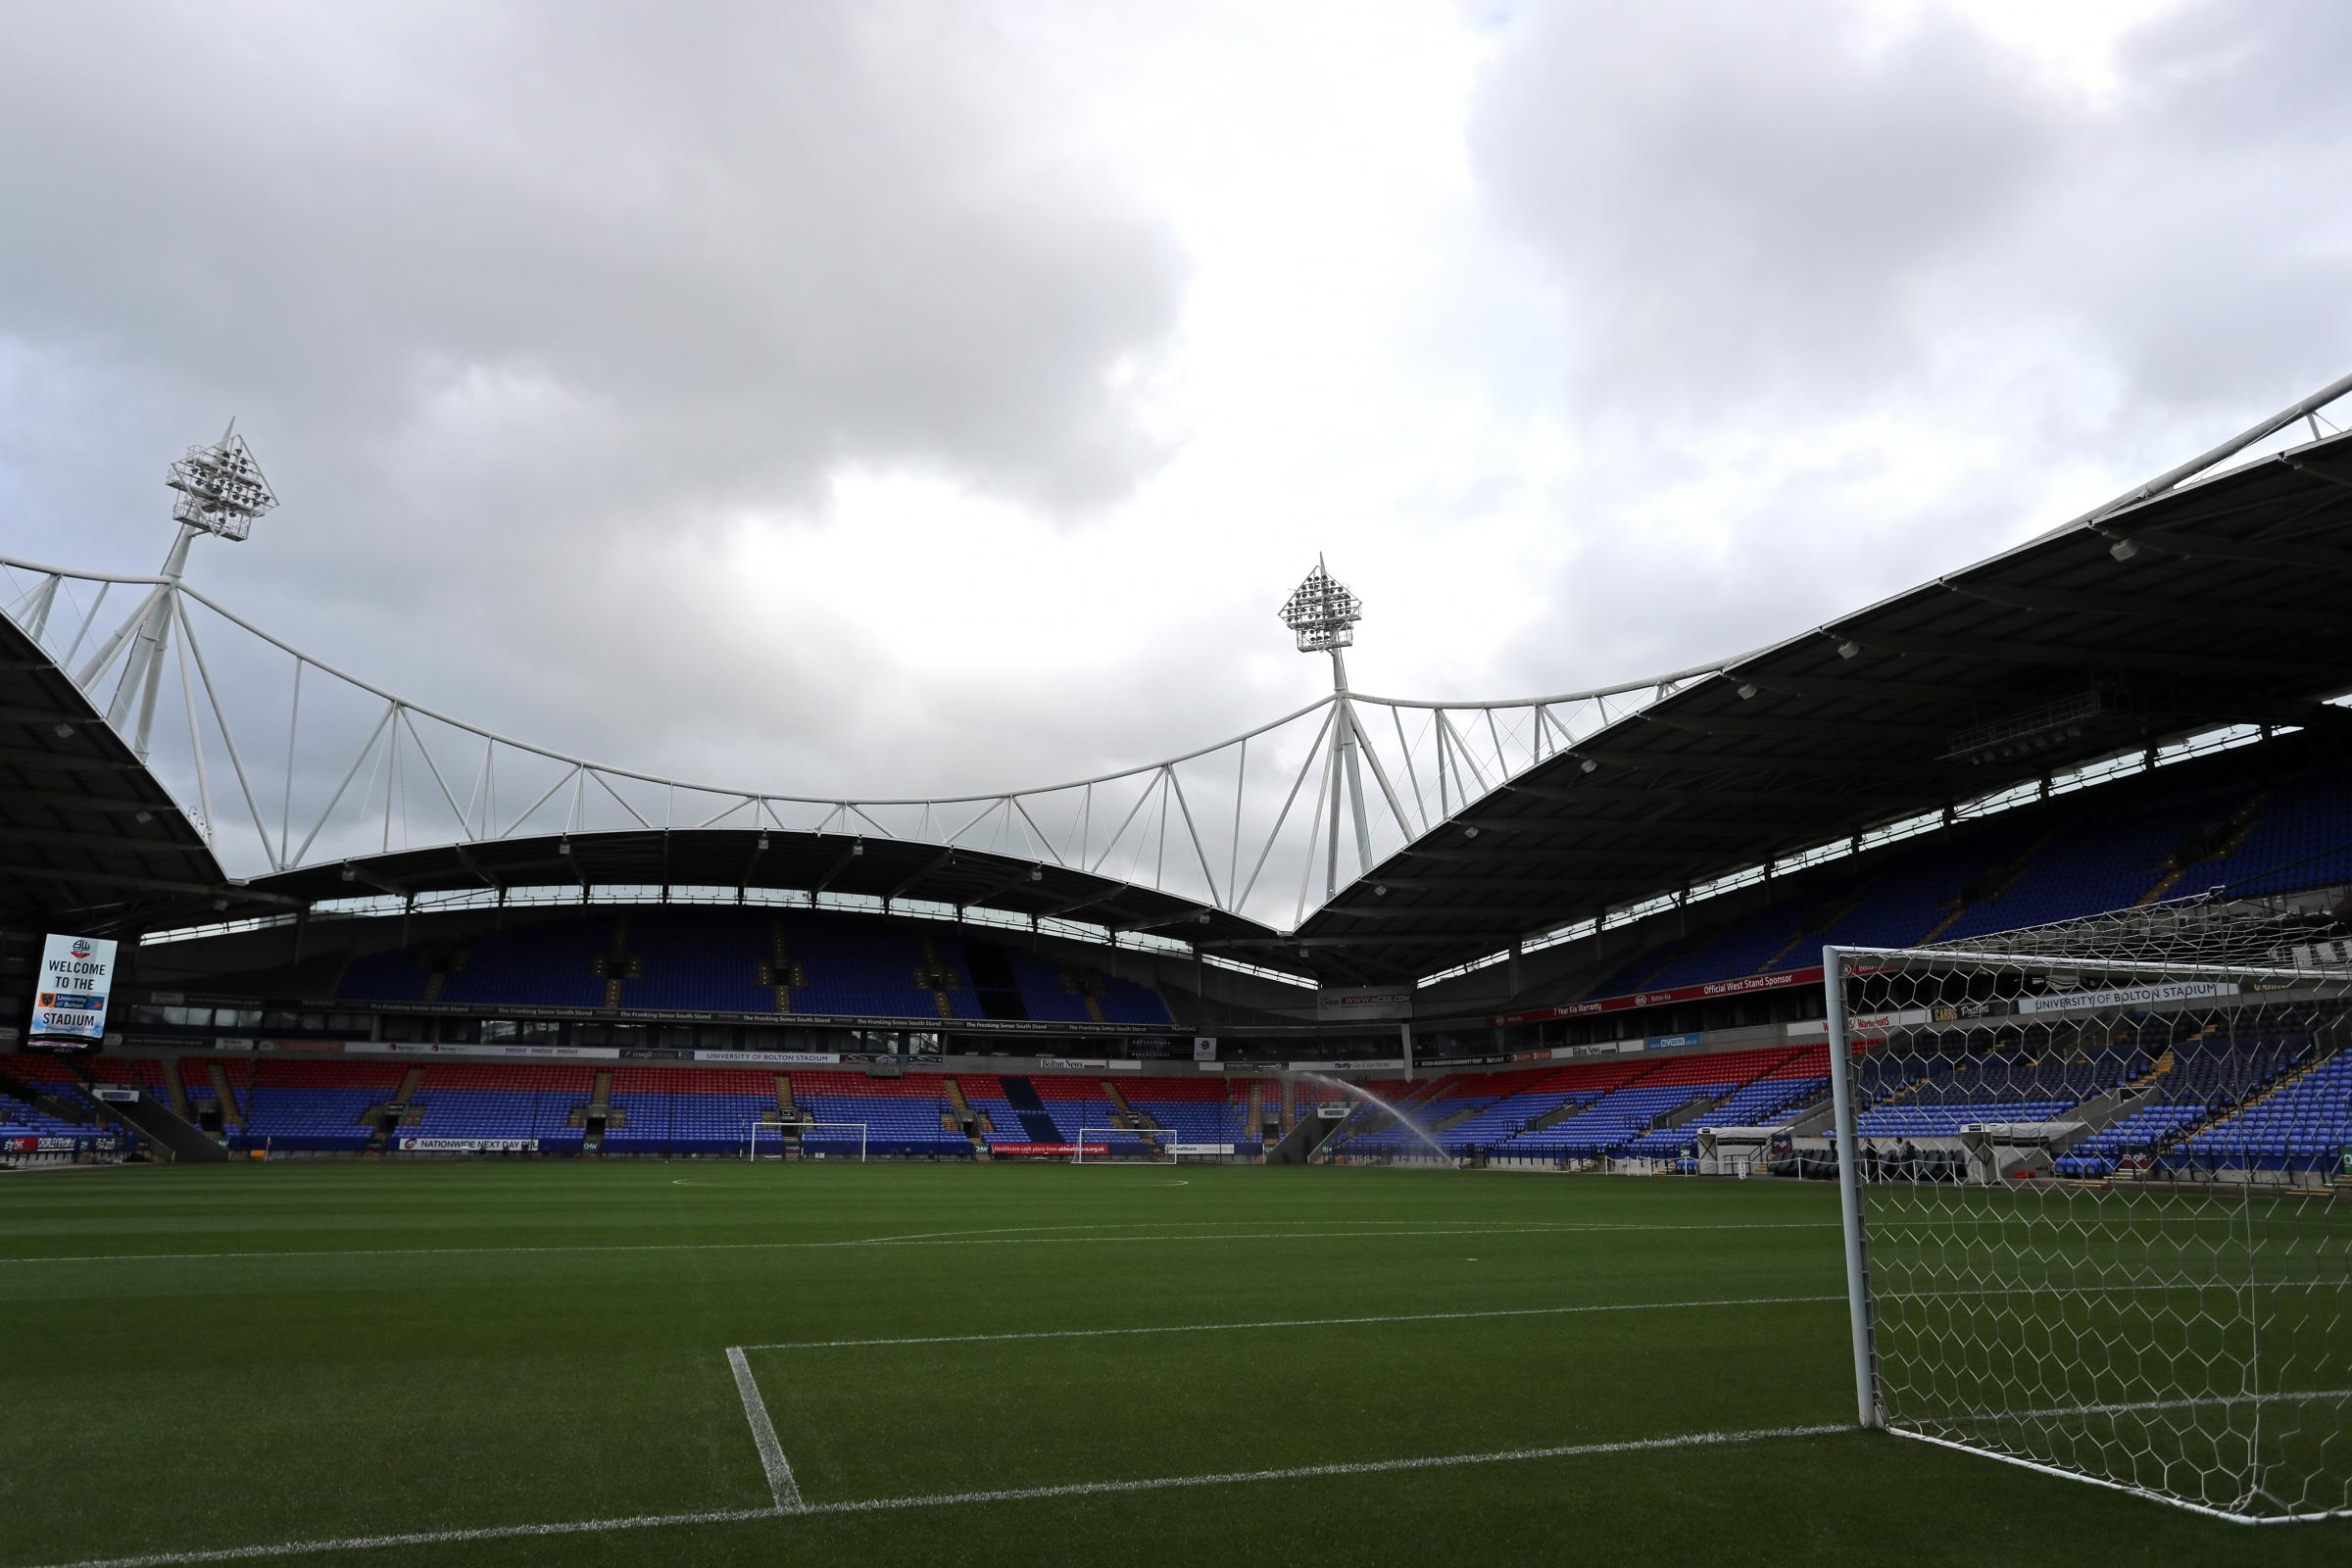 Bolton v Bury: The missing derby that should change football